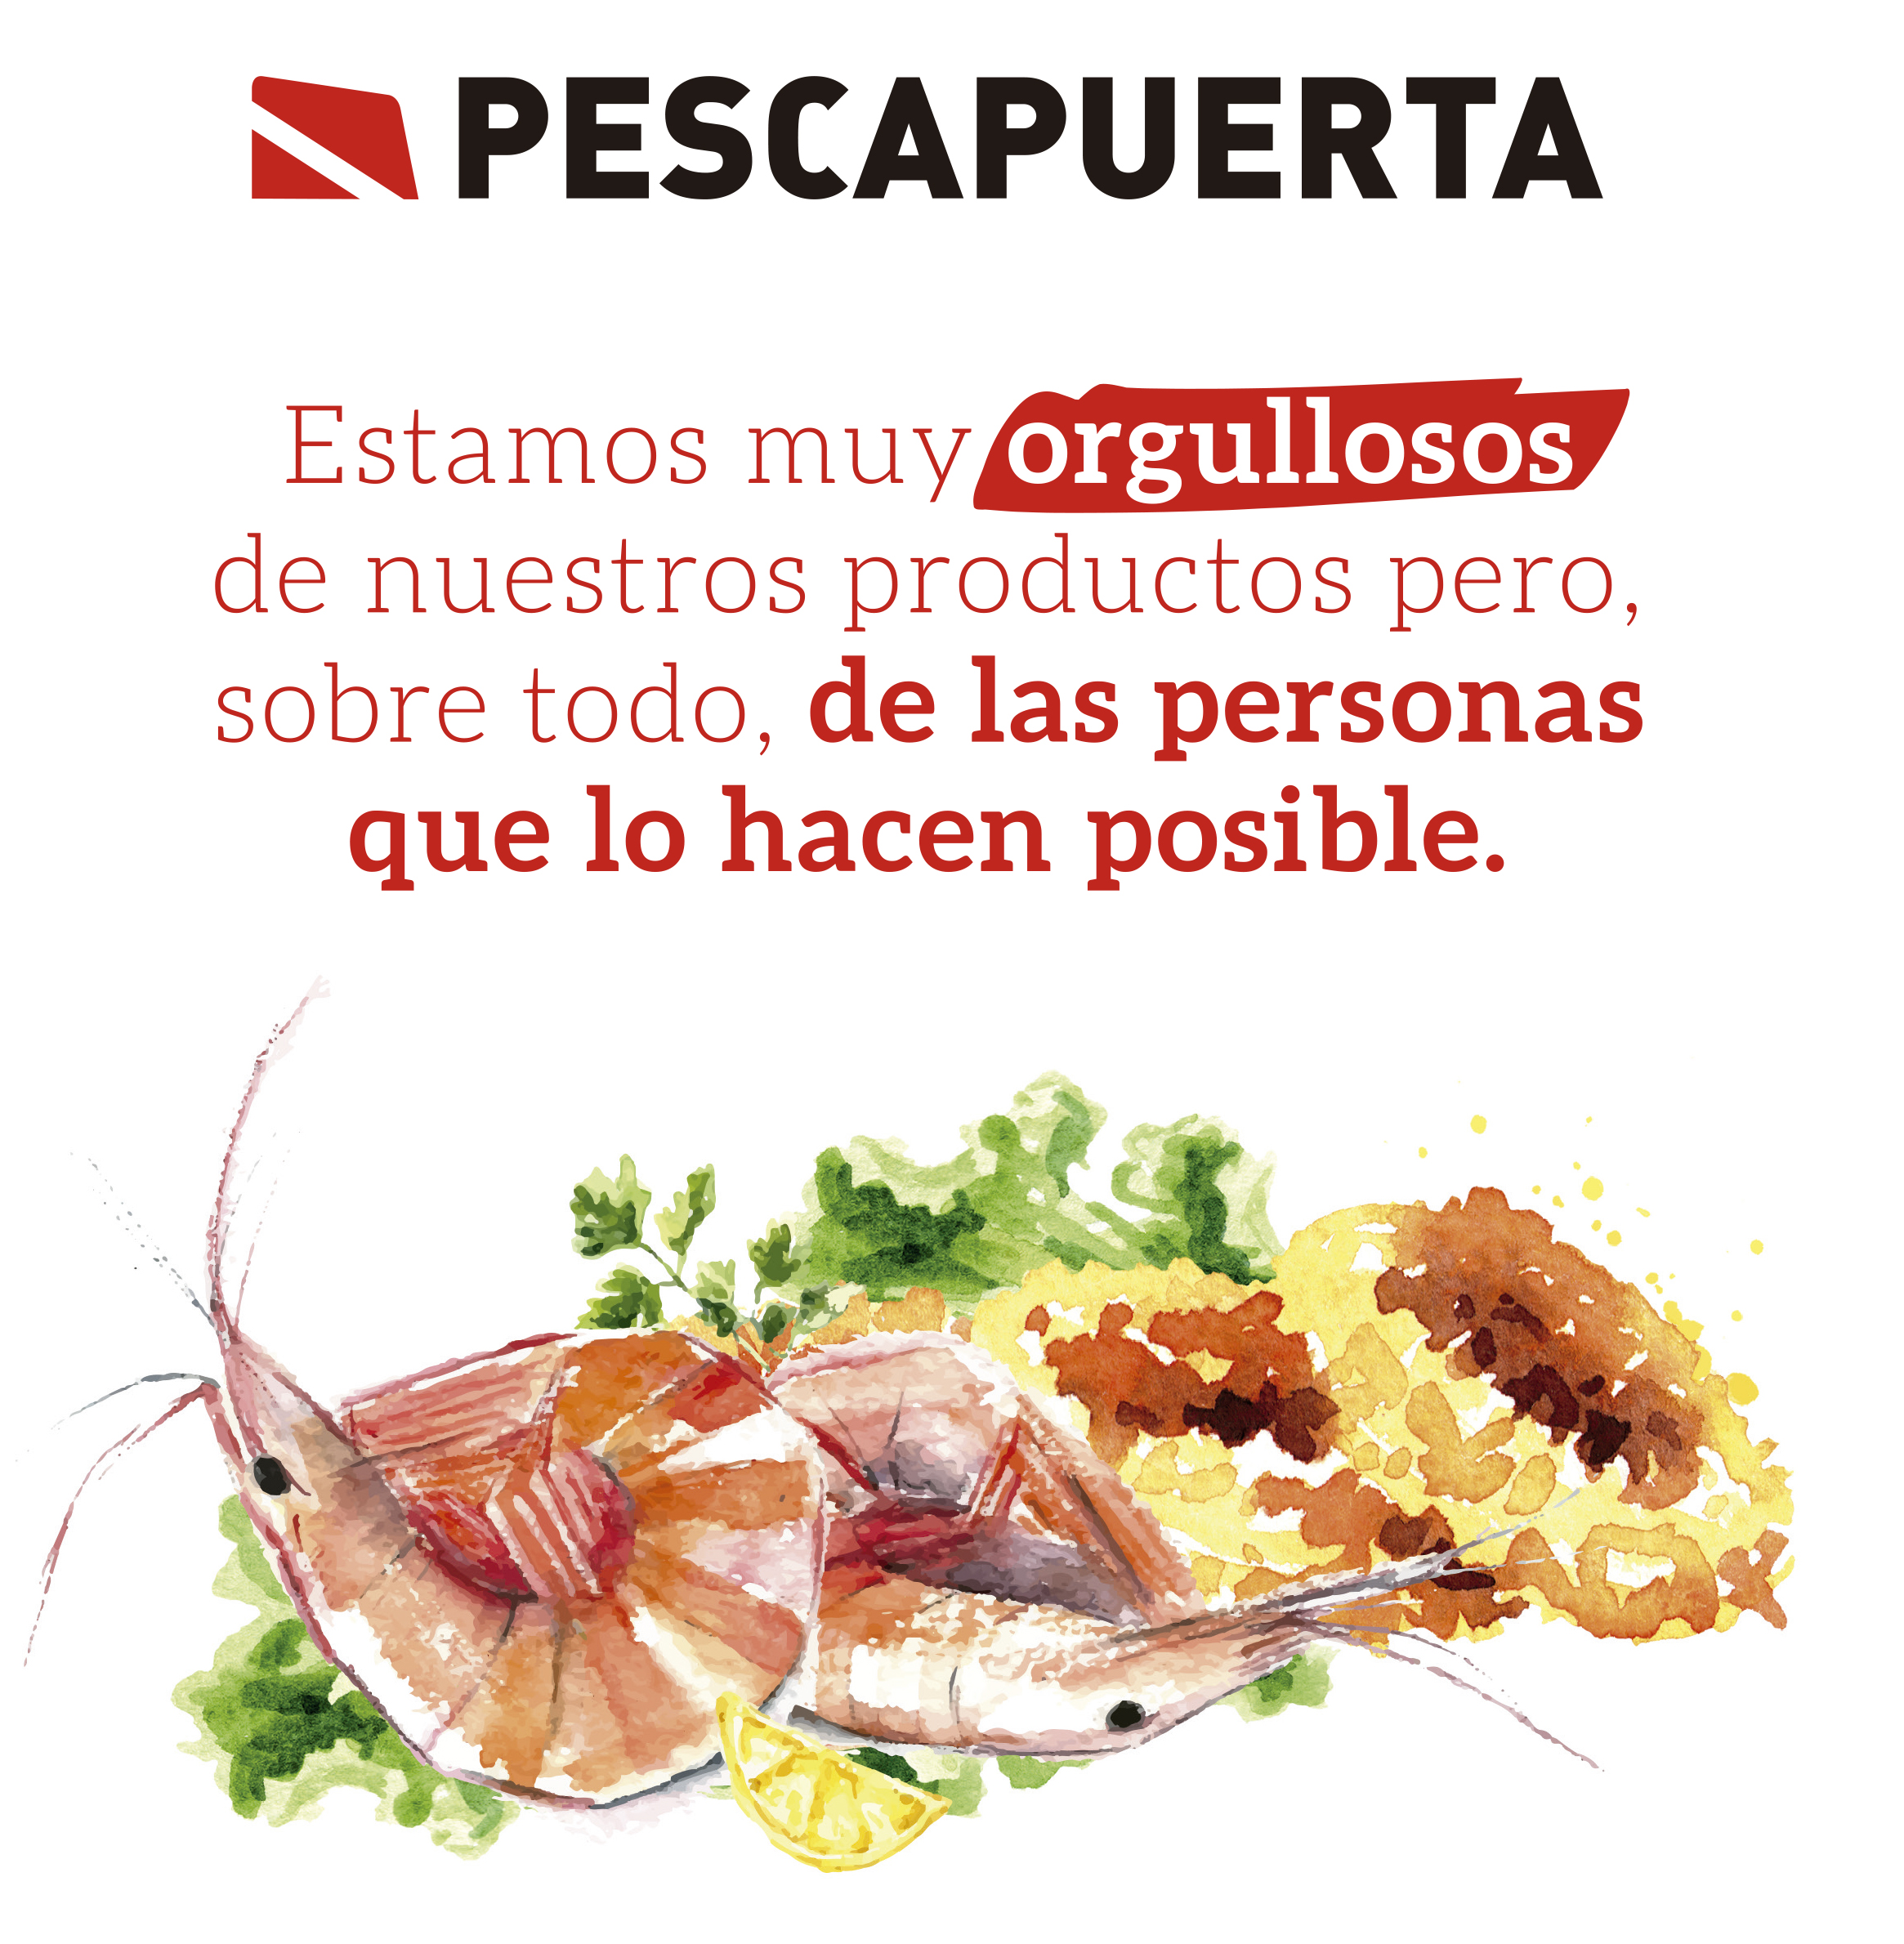 Pescapuerta Grupo among the main frozen fish operators in Spain